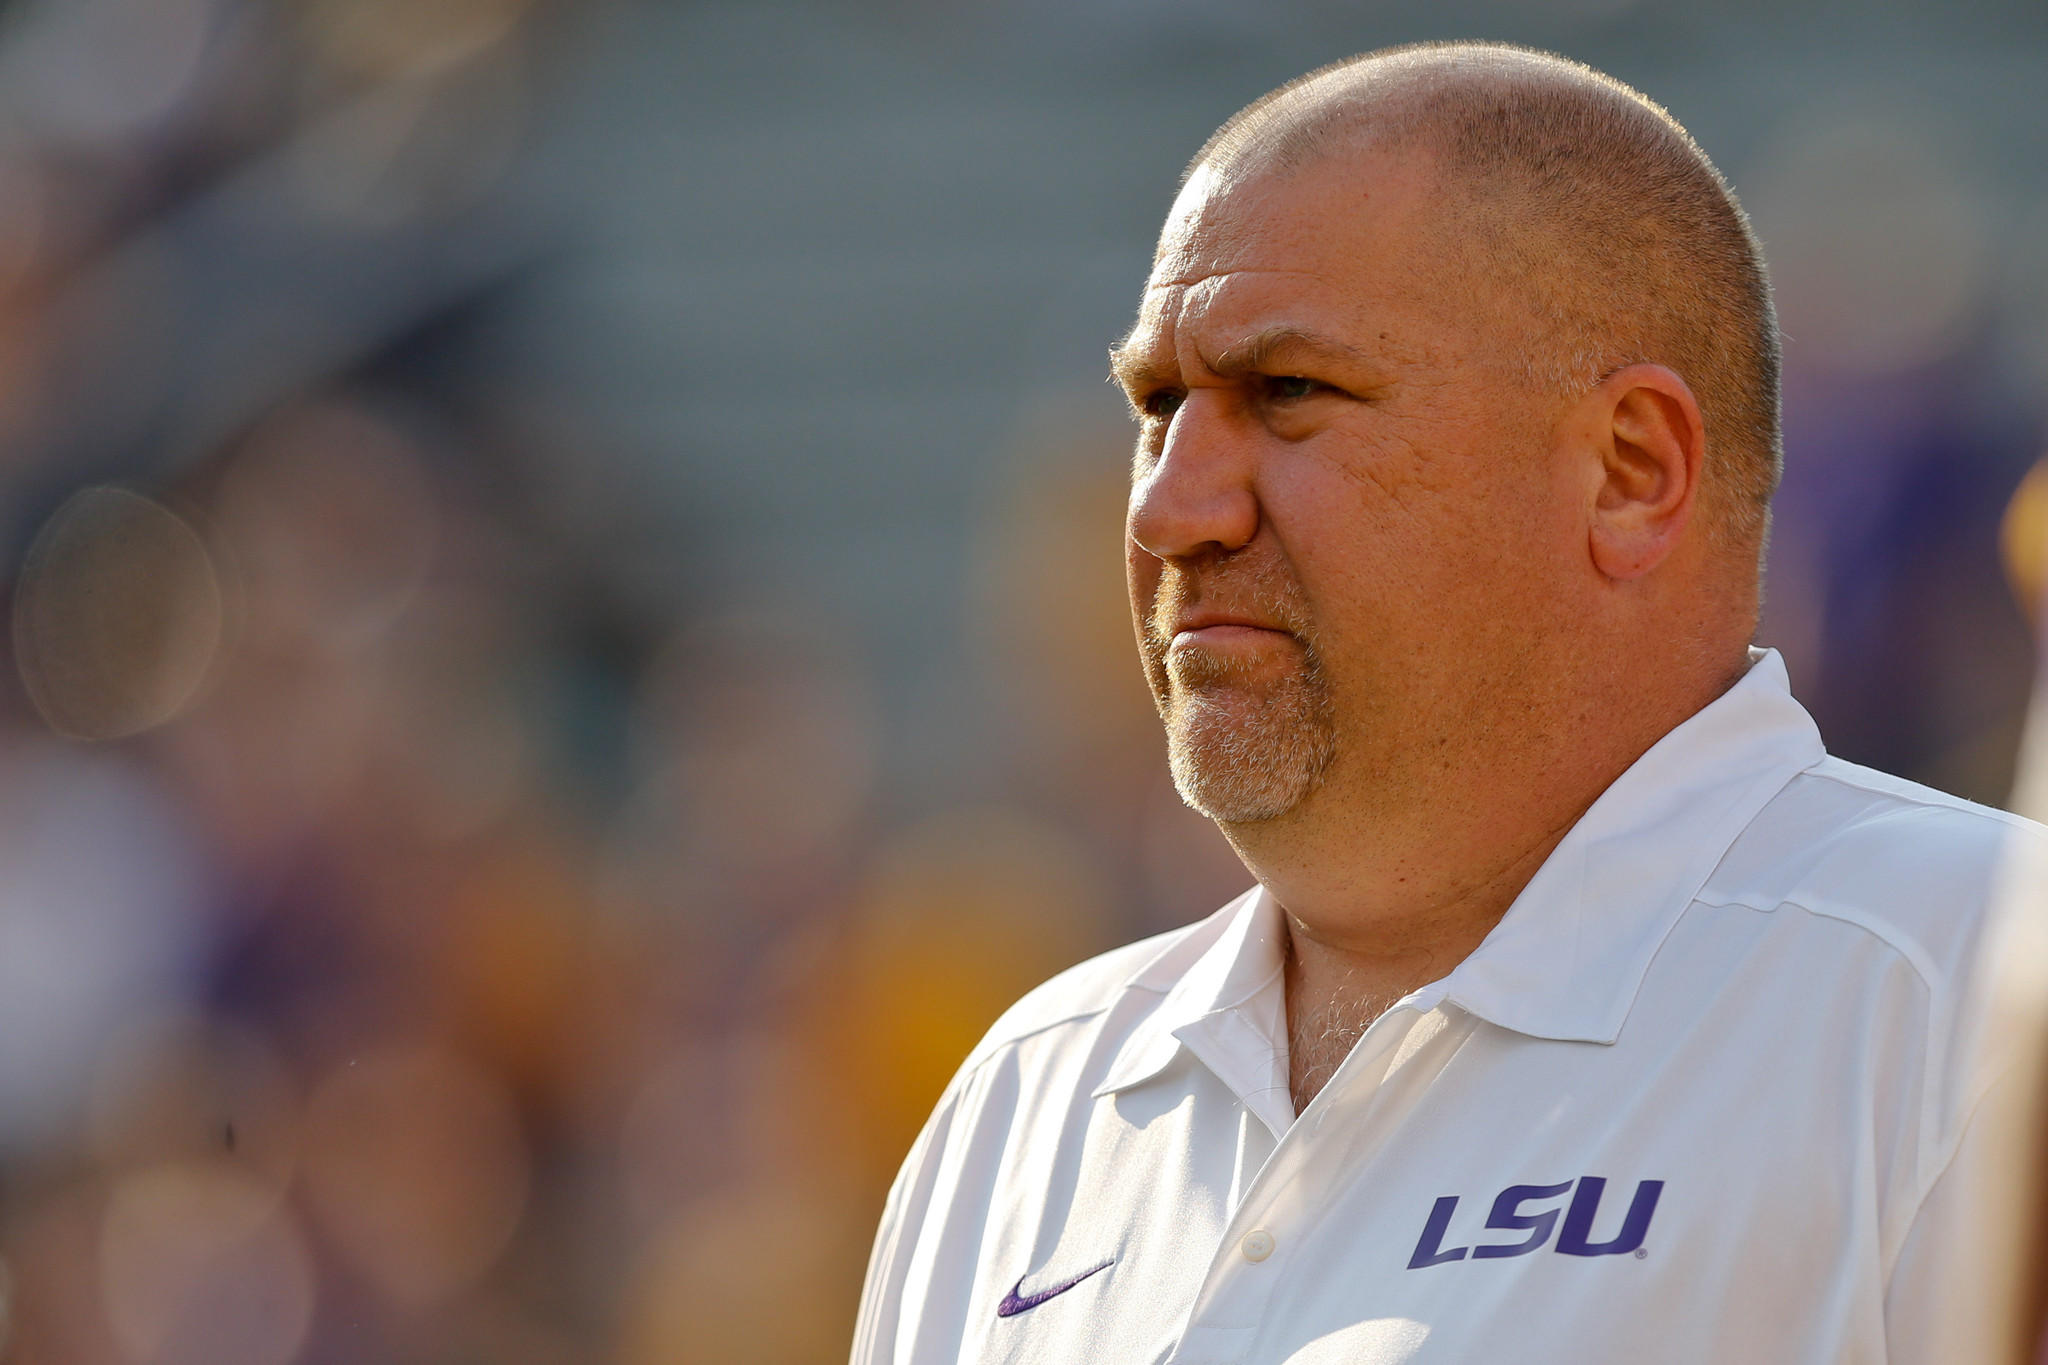 Greg Studrawa looks on before an LSU game against Kent State last September.